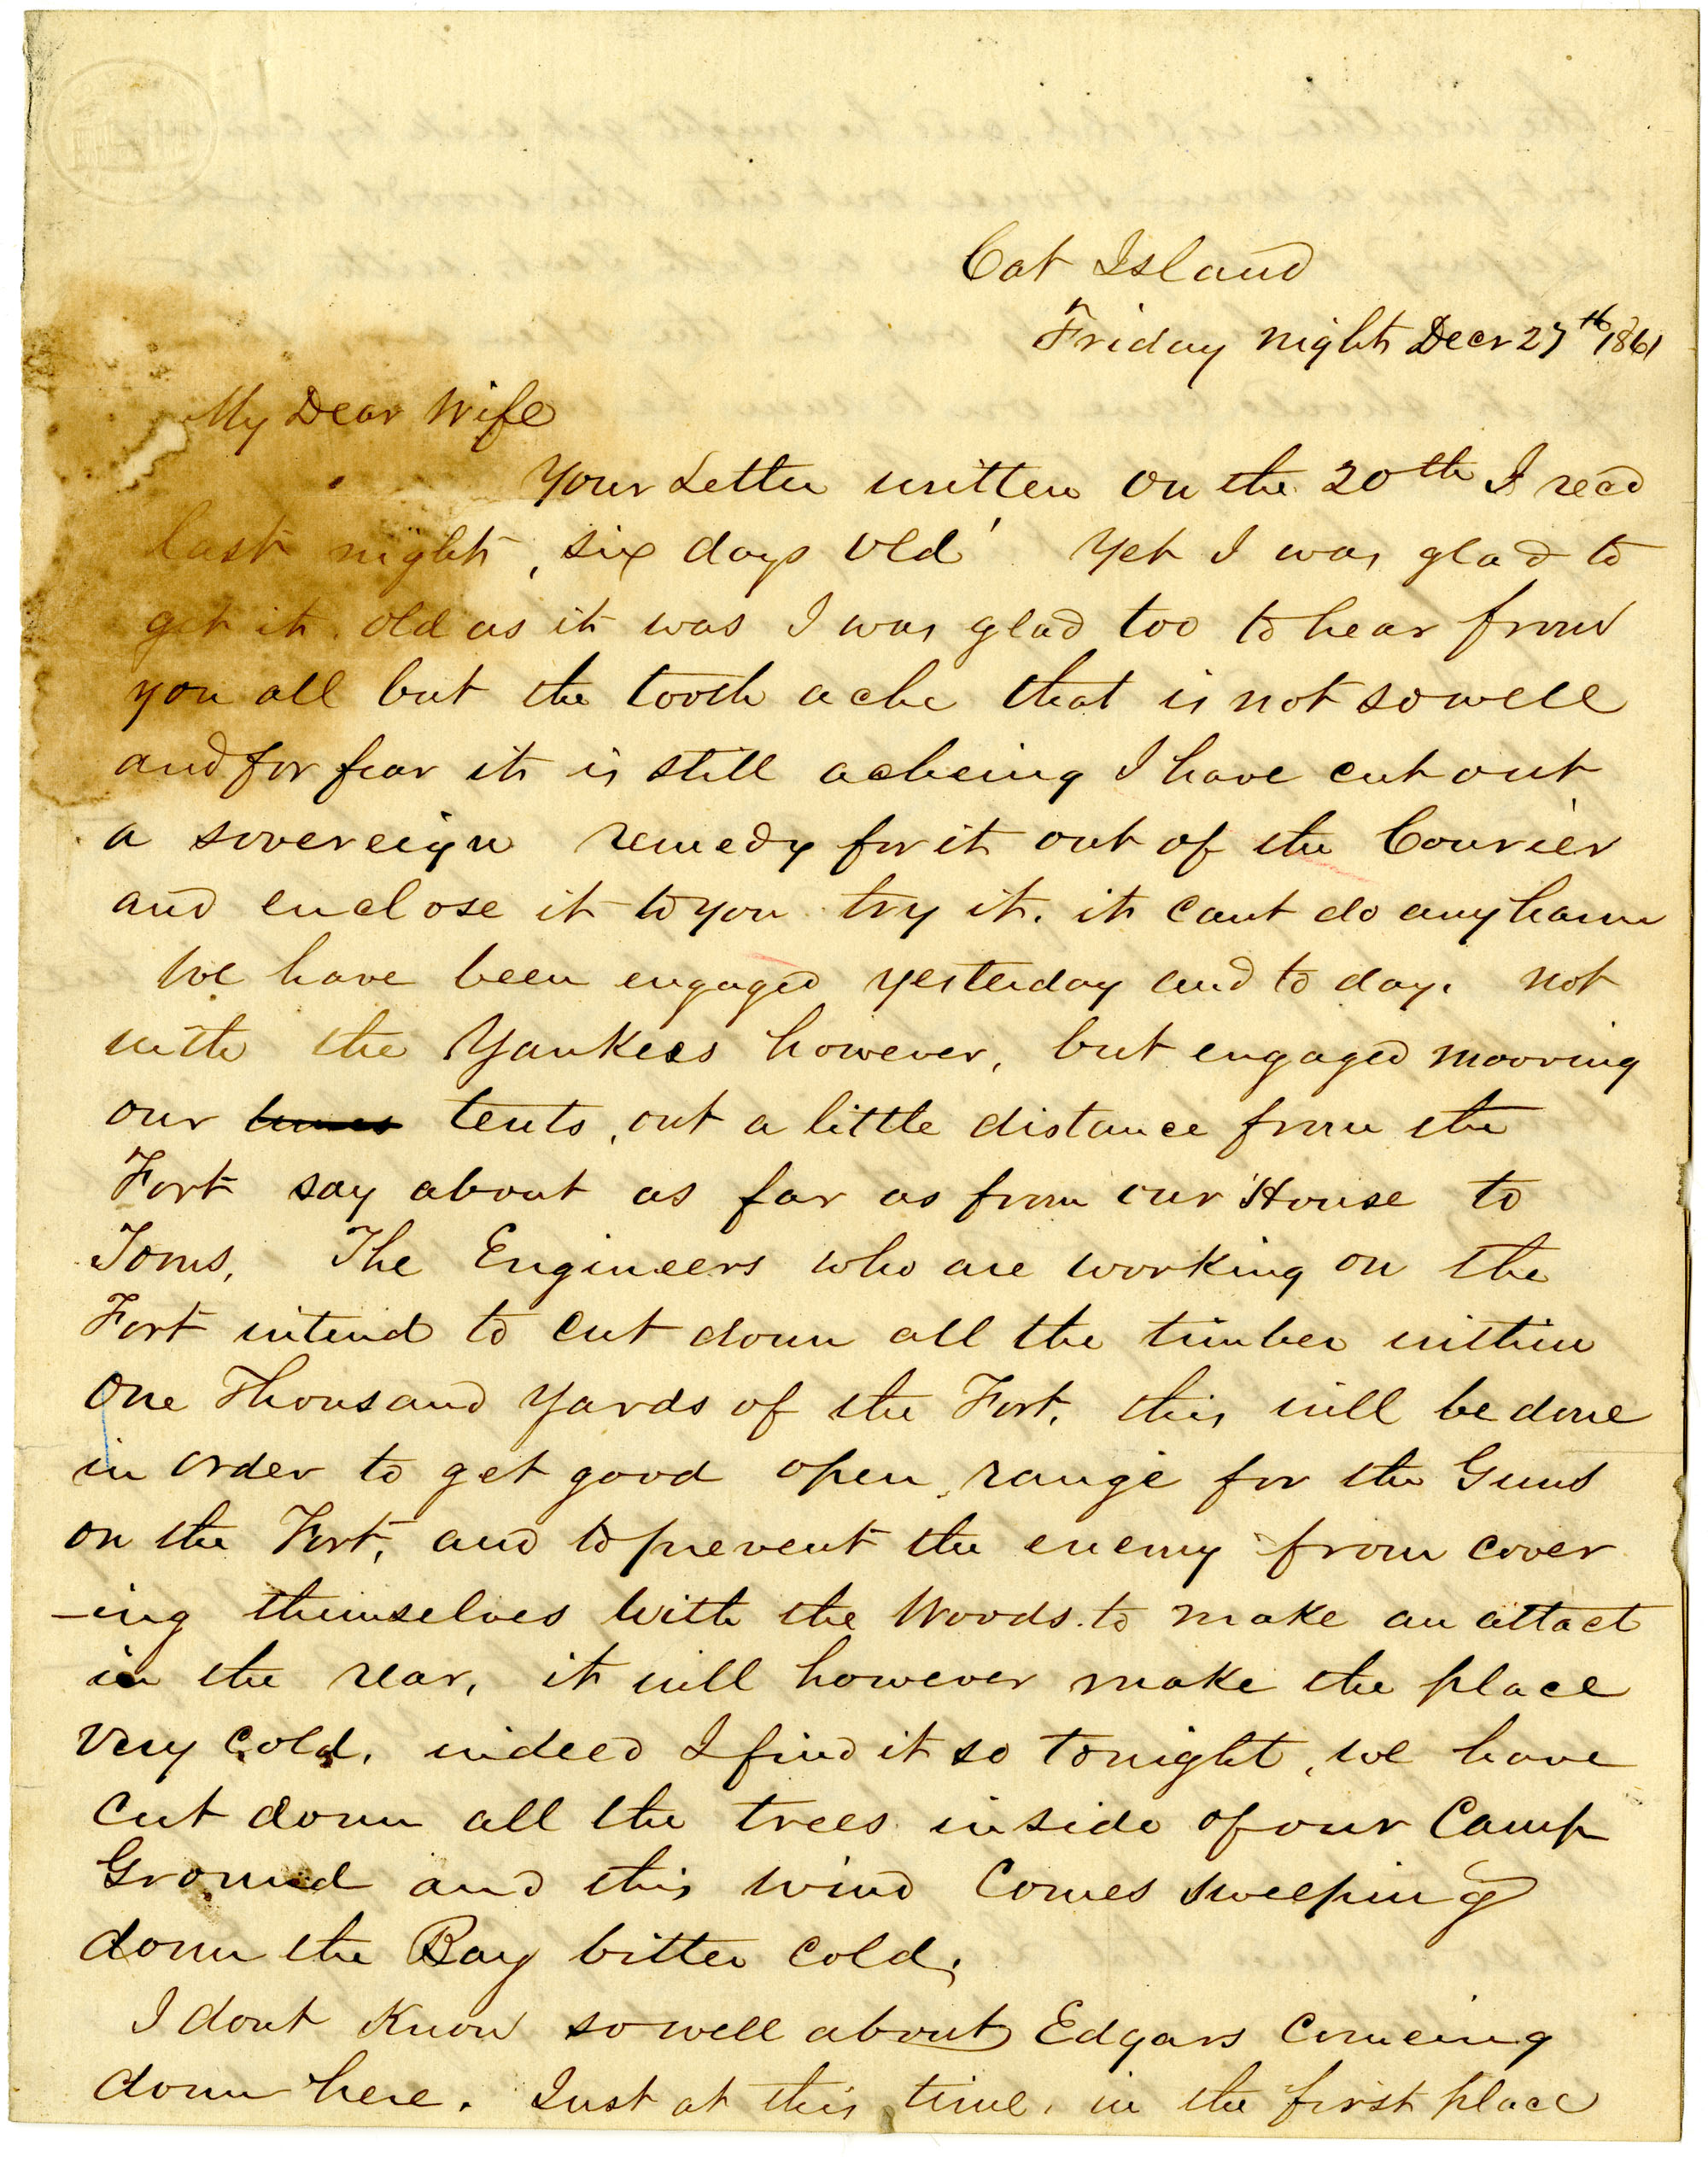 Letter from John R. Beaty to his wife Melvina, December 27, 1861